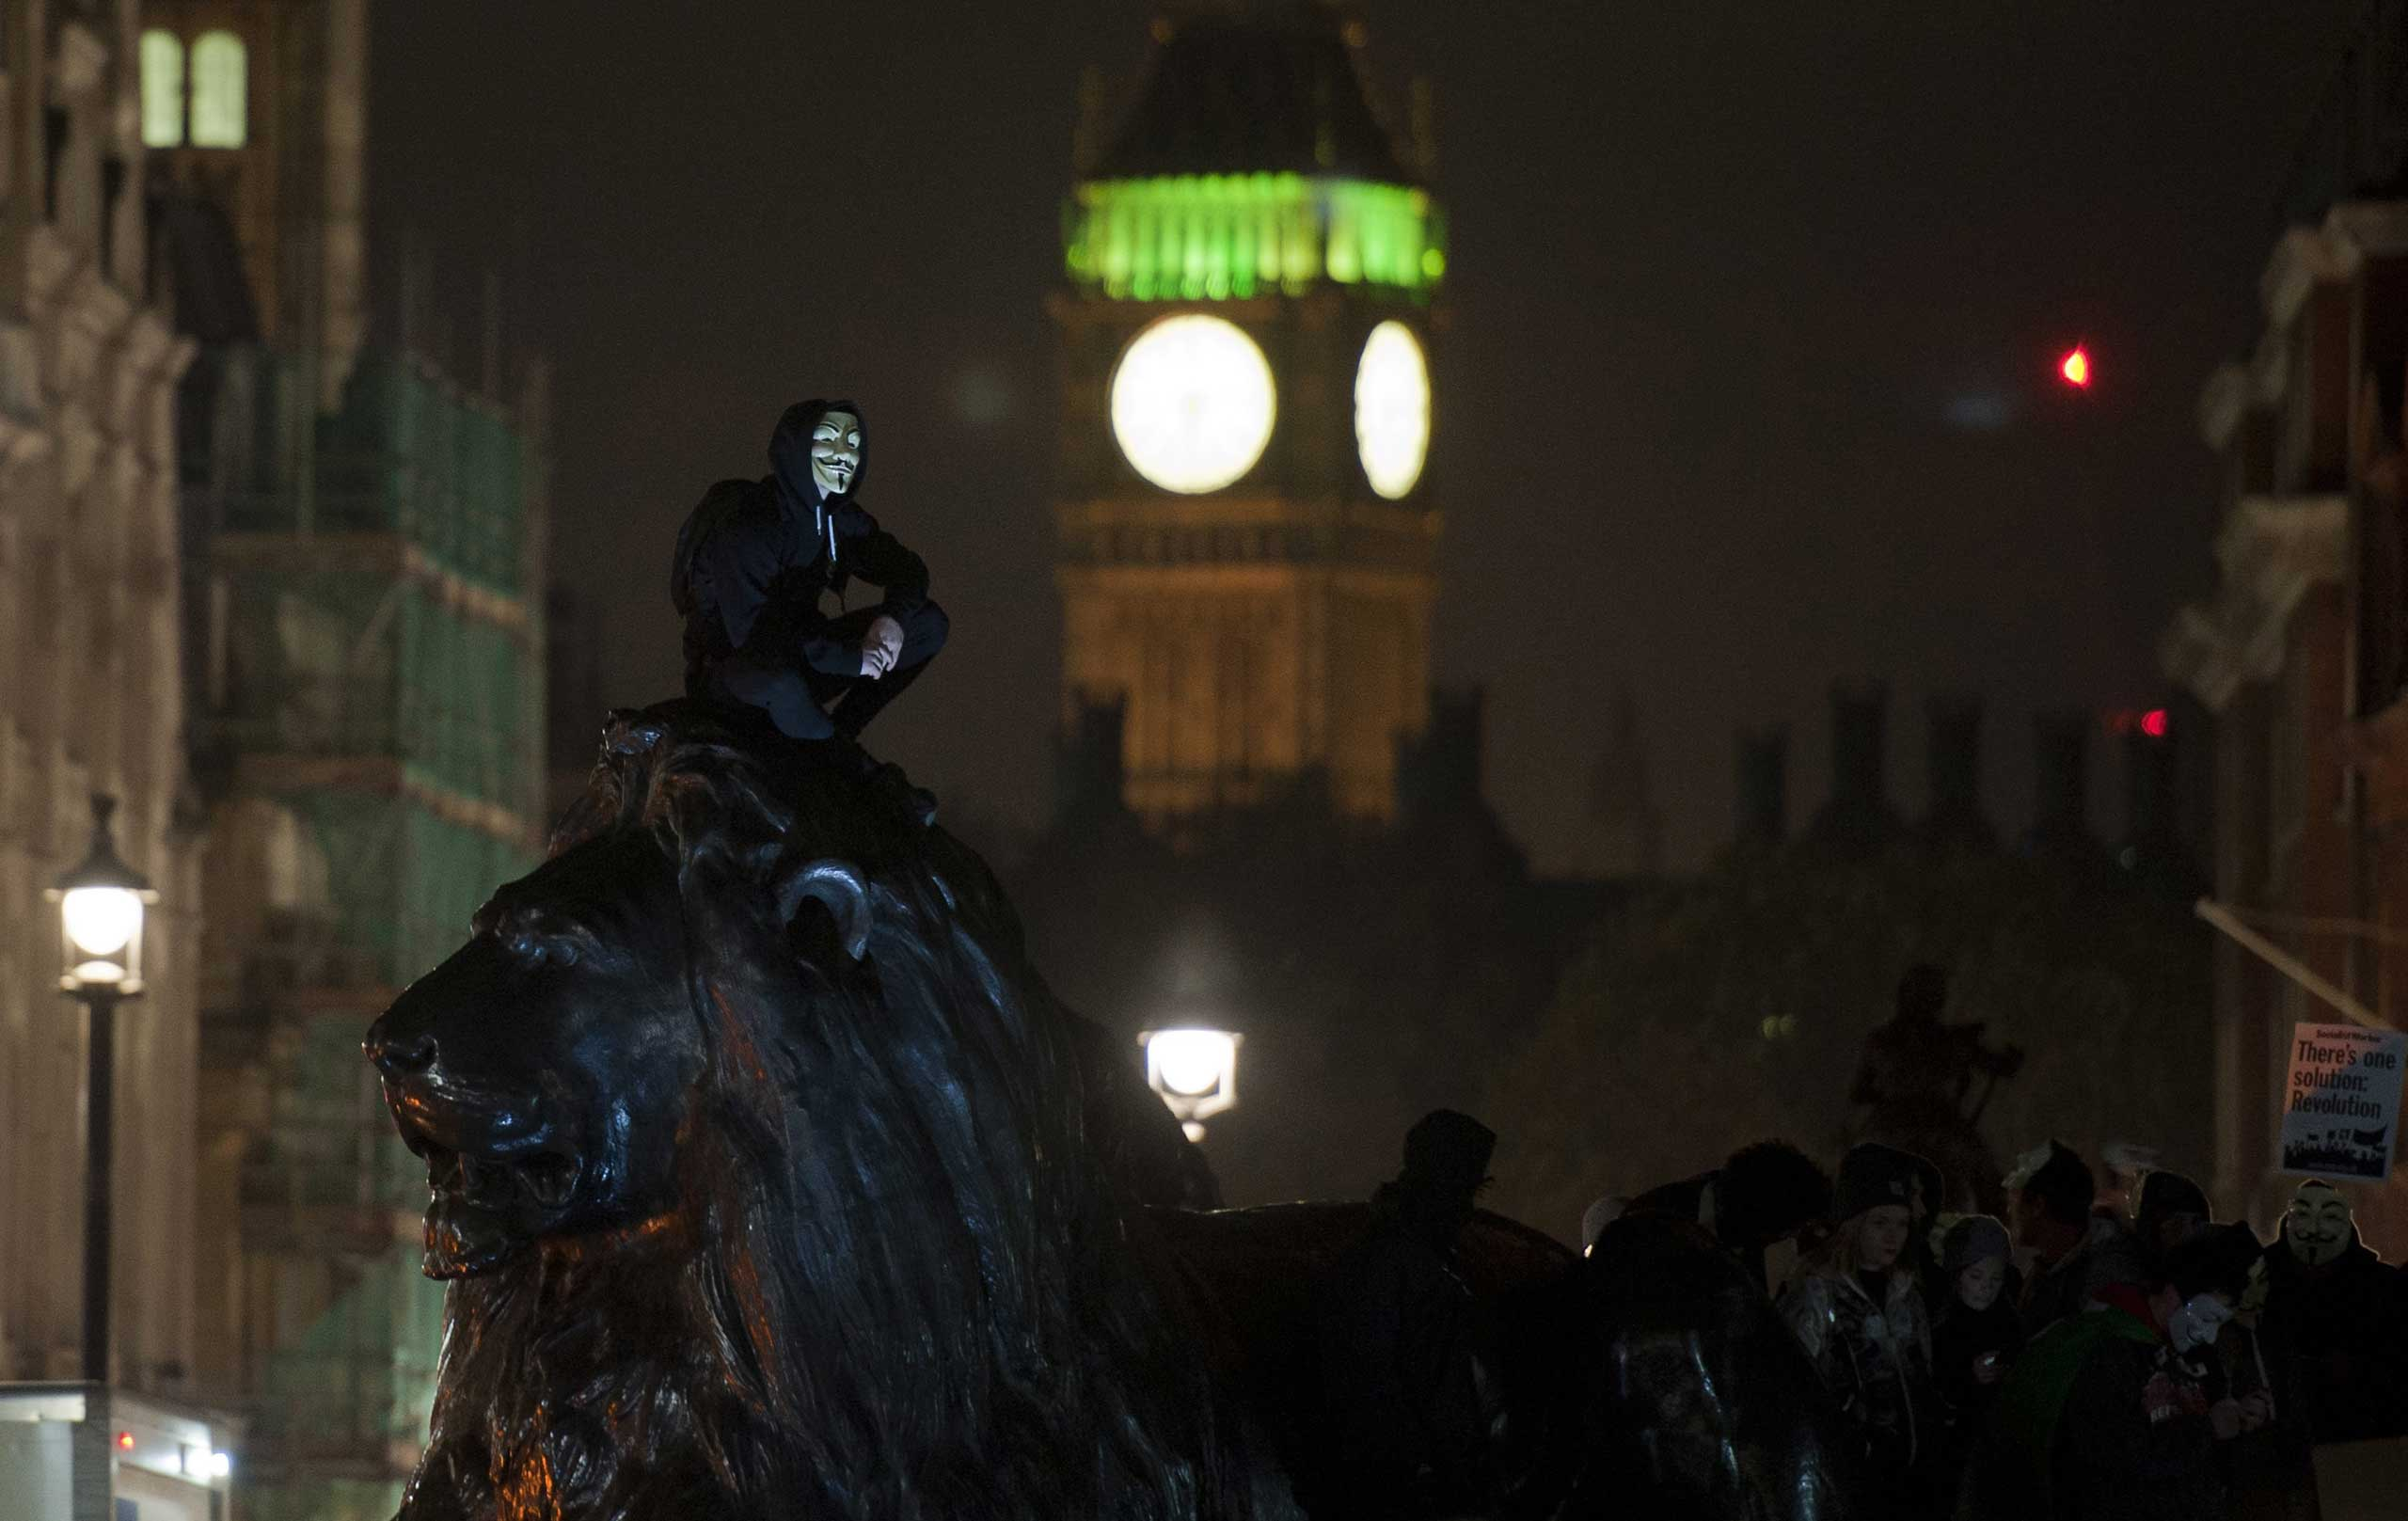 Nov. 5, 2014. A protester stands on a statue on Trafalgar Square during the Million Mask demonstration in London. The demonstration took place on Bonfire Night, the anniversary of the capture of Guy Fawkes, during his attempt to blow up the Houses of Parliament in 1605.